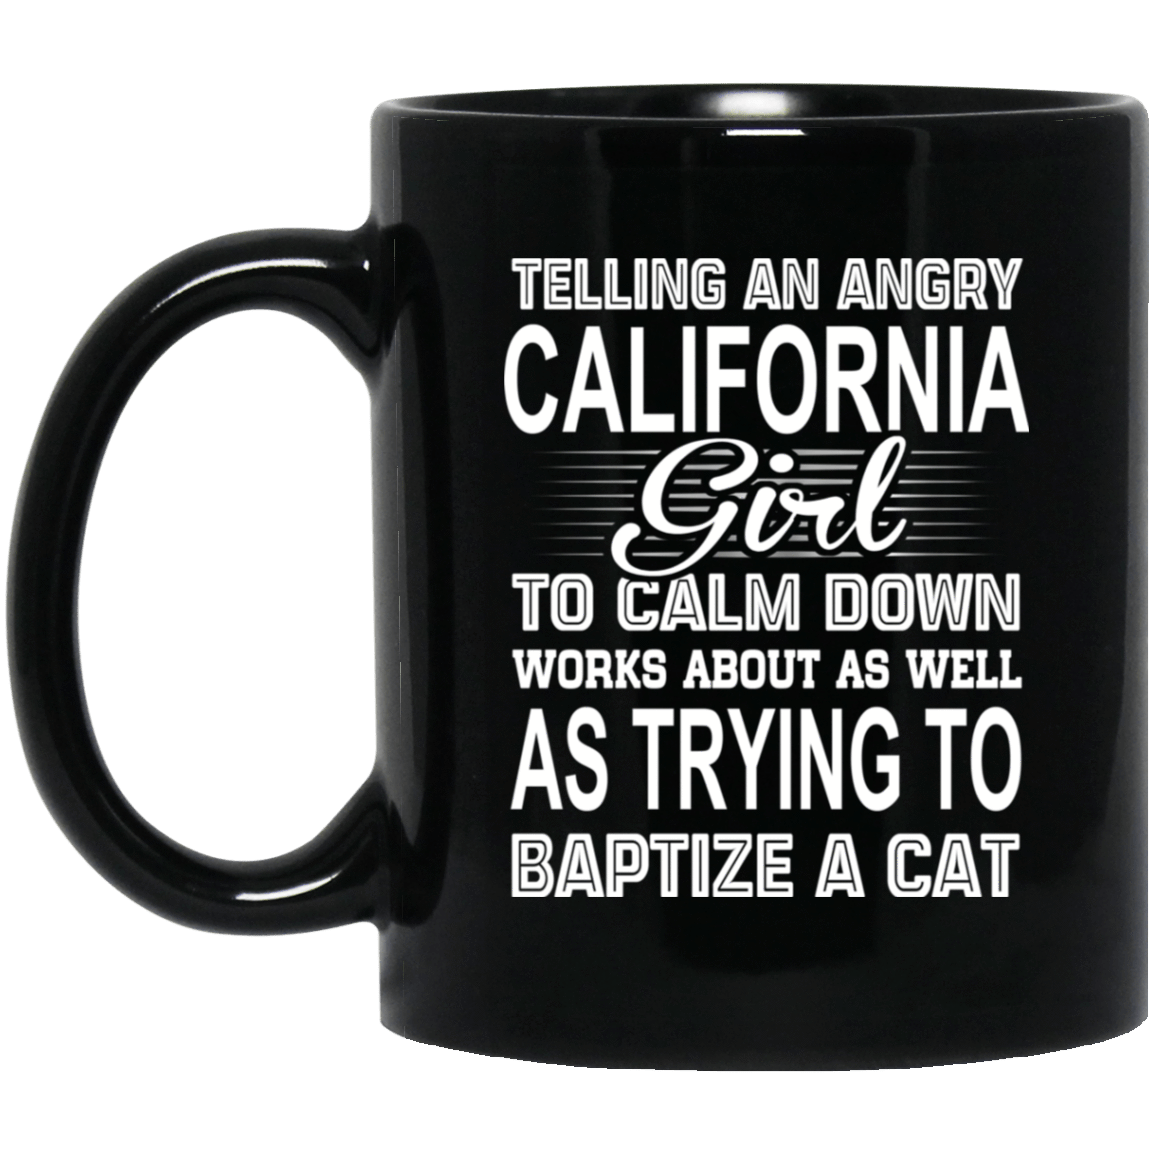 Telling An Angry California Girl To Calm Down Works About As Well As Trying To Baptize A Cat Mug 1065-10181-76151922-49307 - Tee Ript